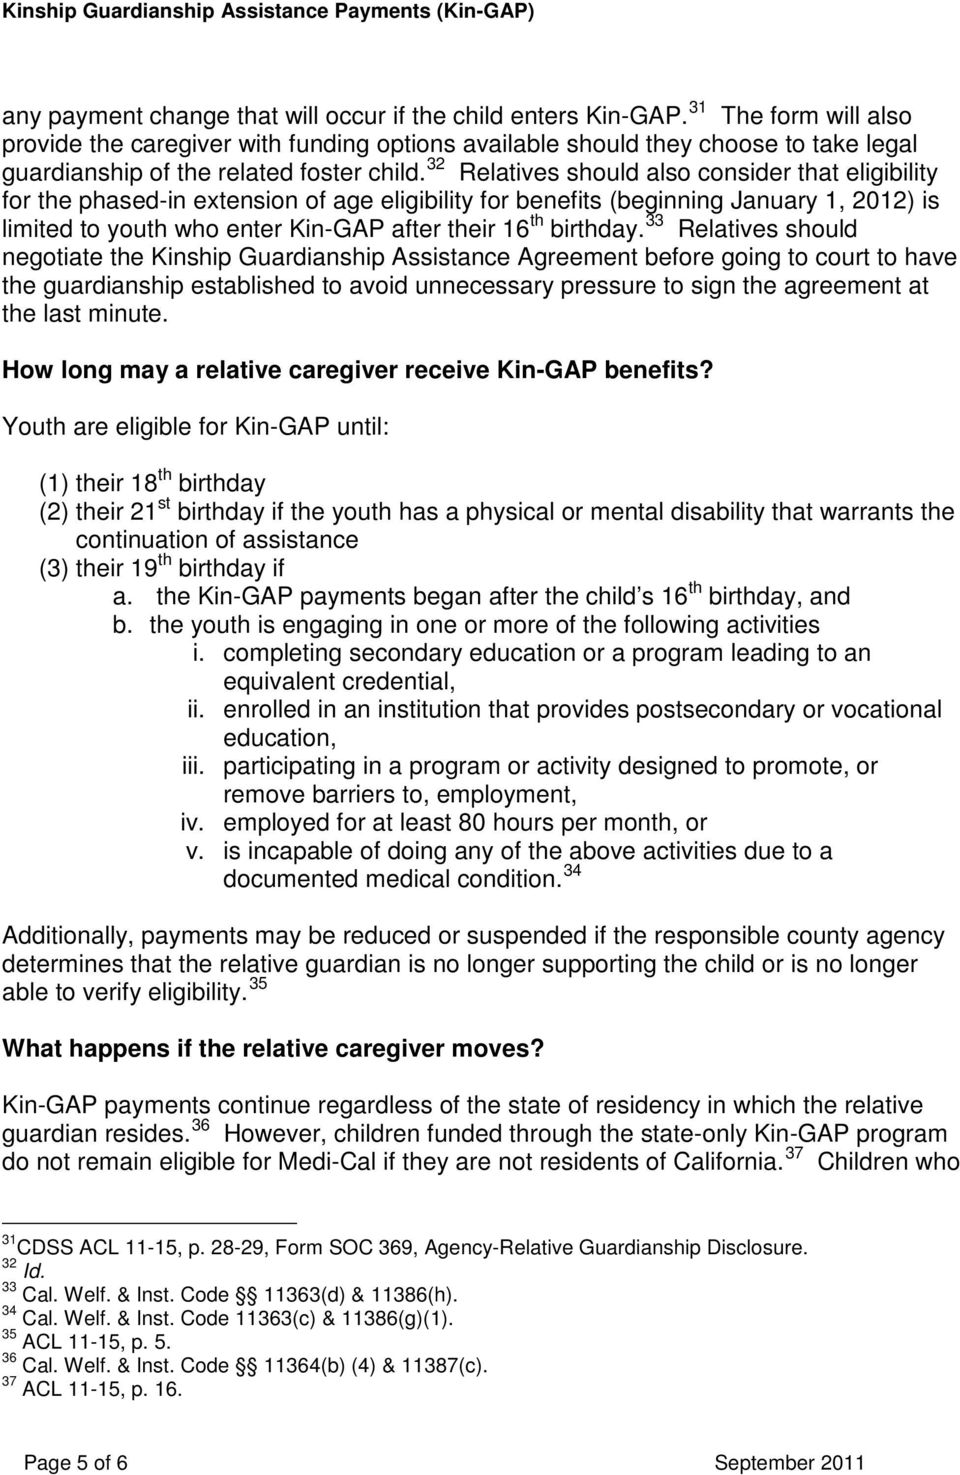 32 Relatives should also consider that eligibility for the phased-in extension of age eligibility for benefits (beginning January 1, 2012) is limited to youth who enter Kin-GAP after their 16 th